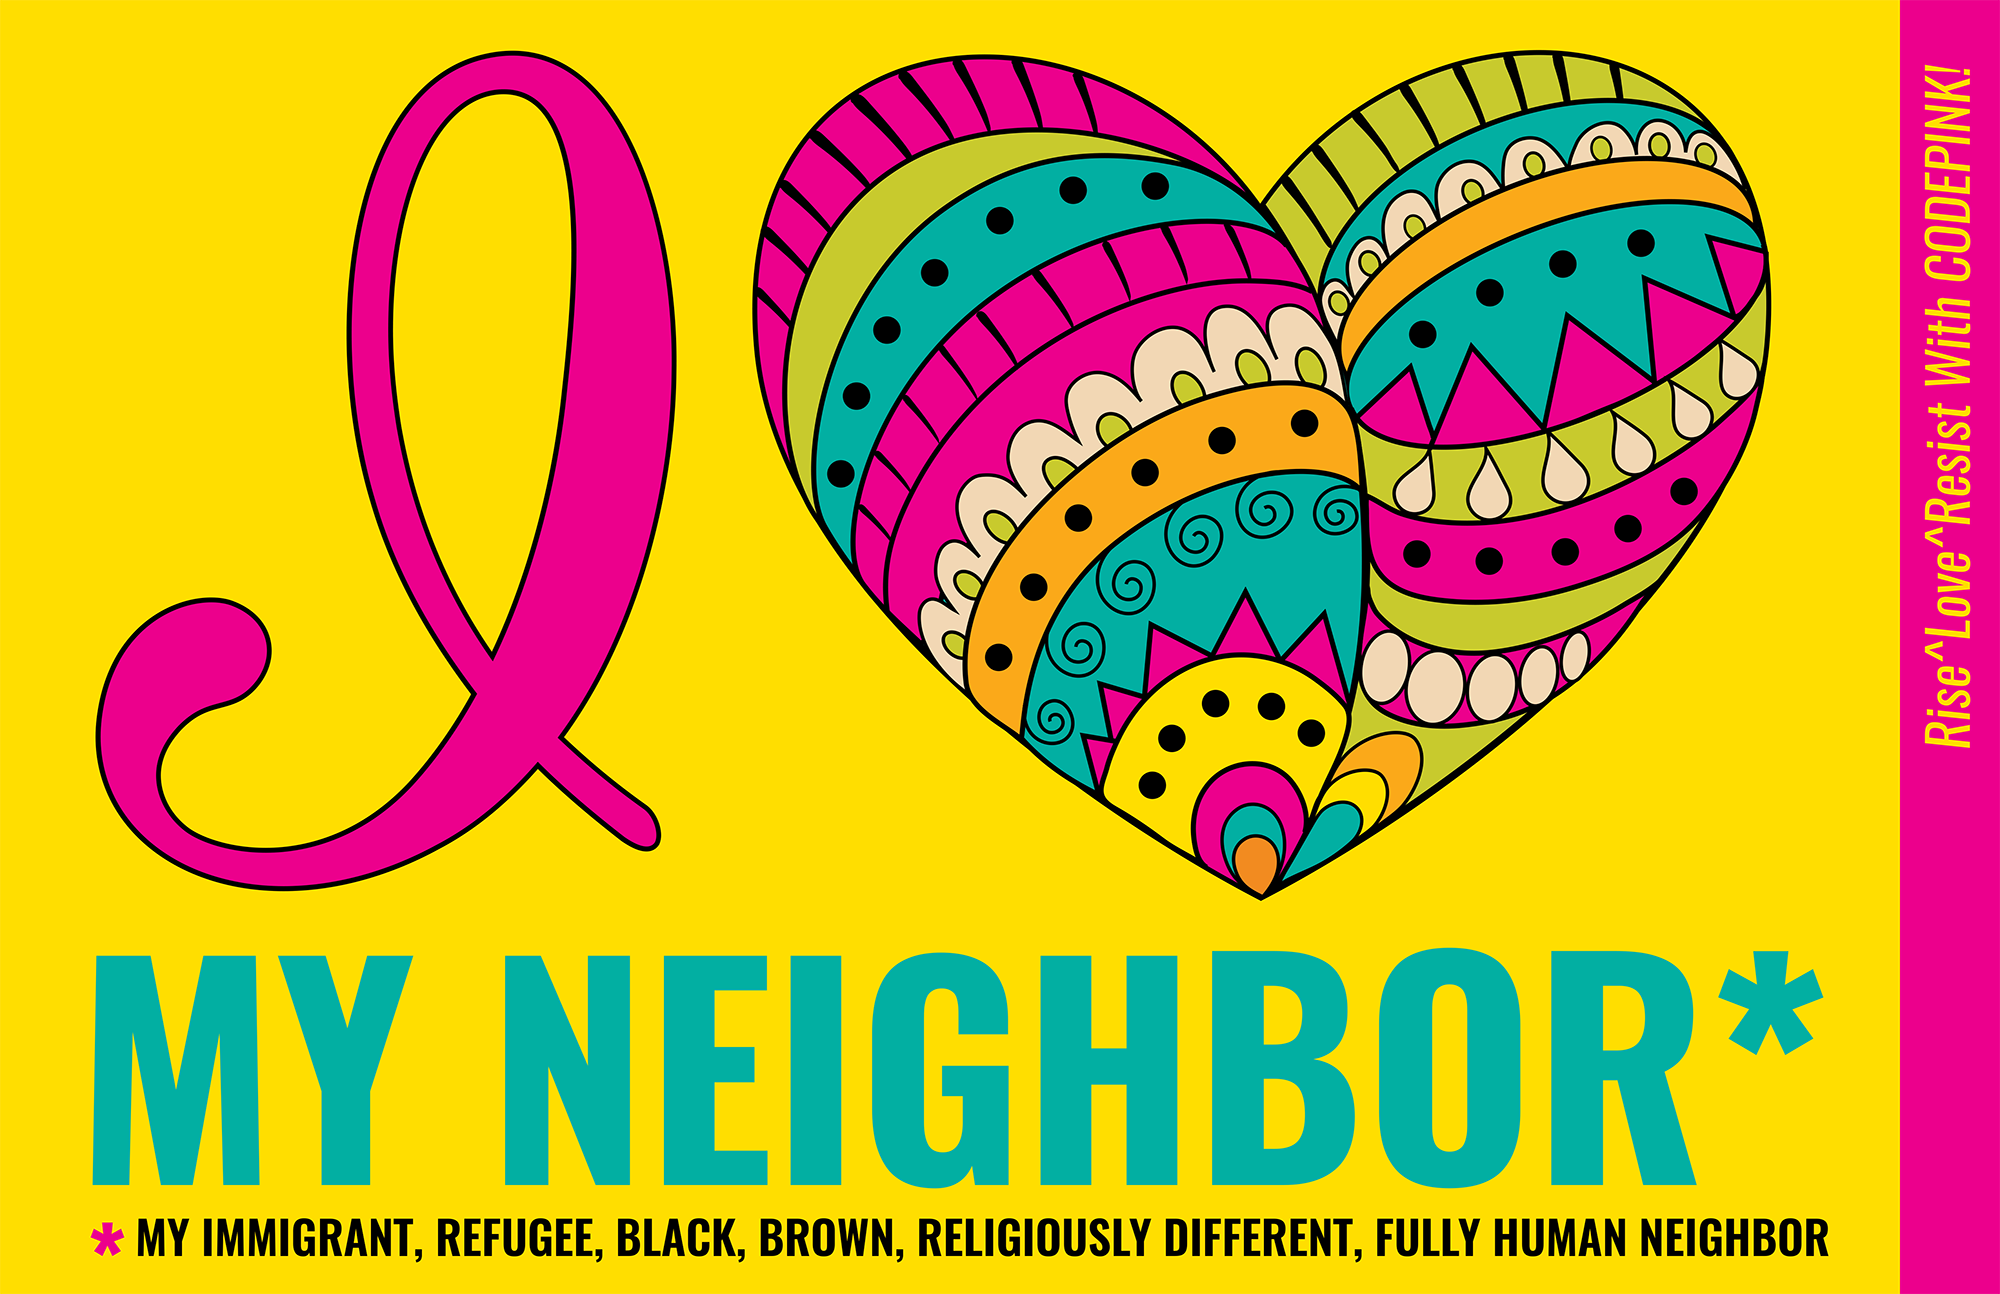 I_LOVE_NEIGHBOR_FLYER_codepink_11x17.png